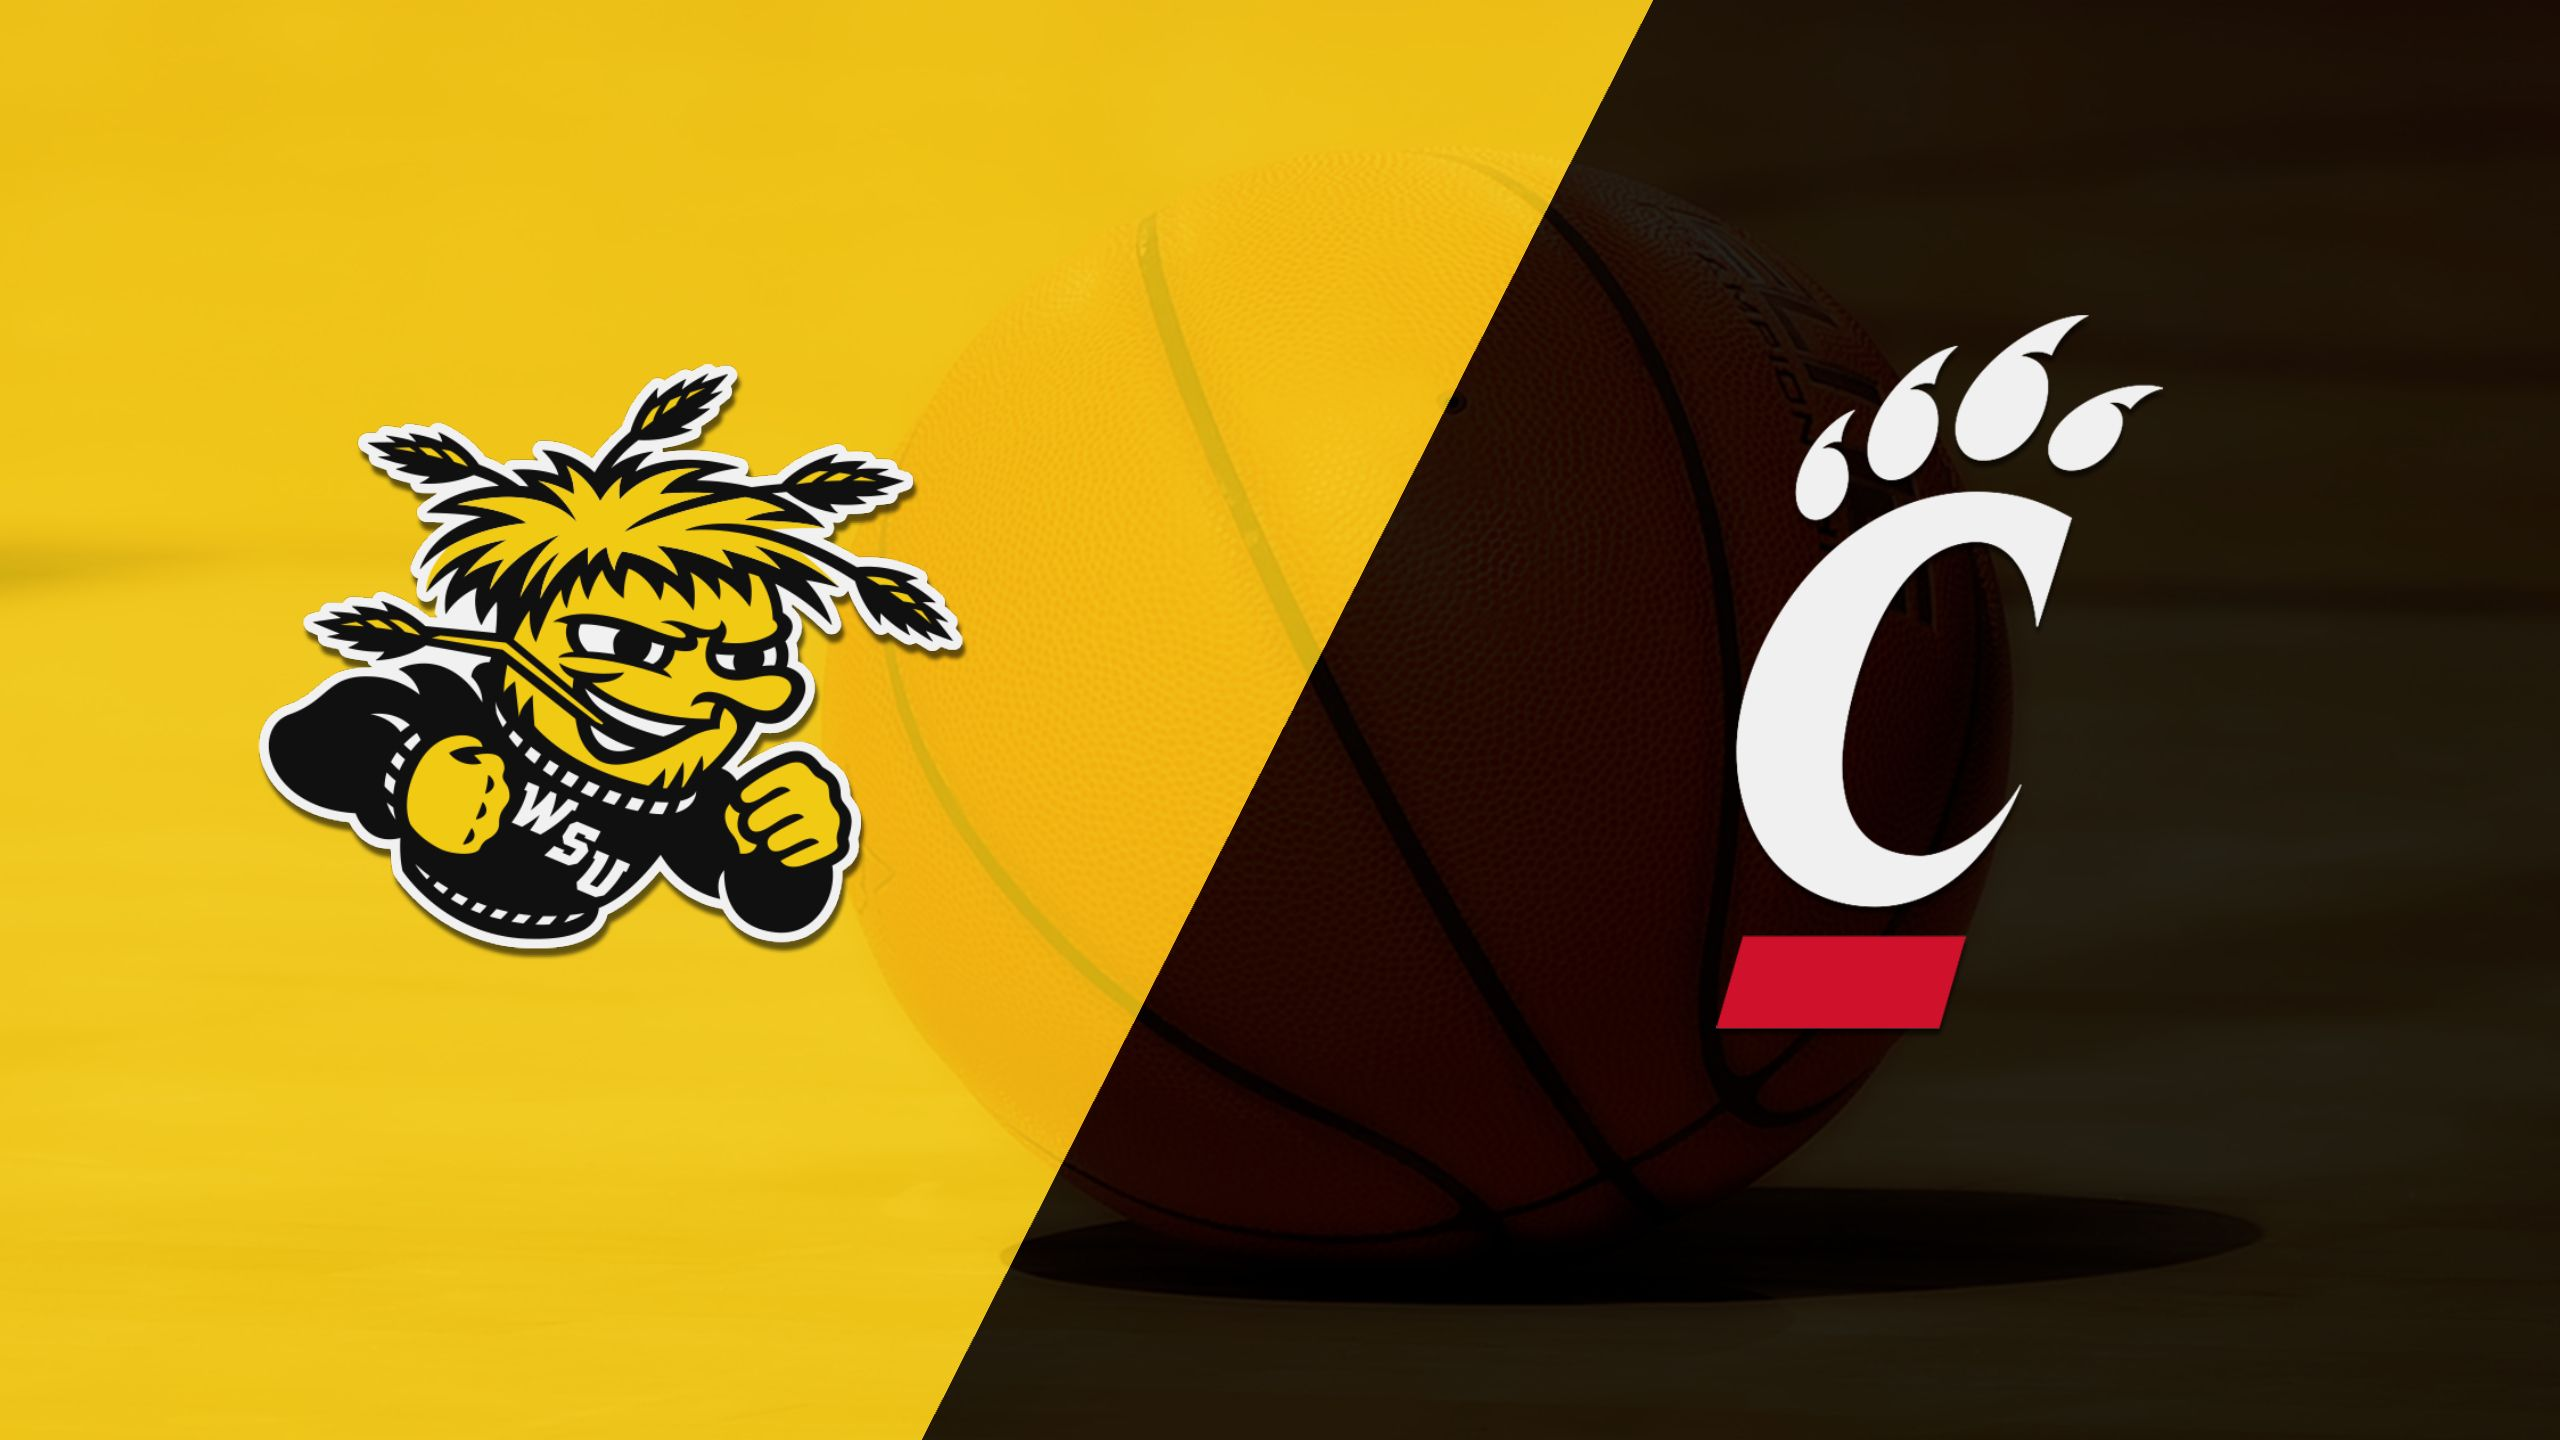 #19 Wichita State vs. #5 Cincinnati (M Basketball) (re-air)